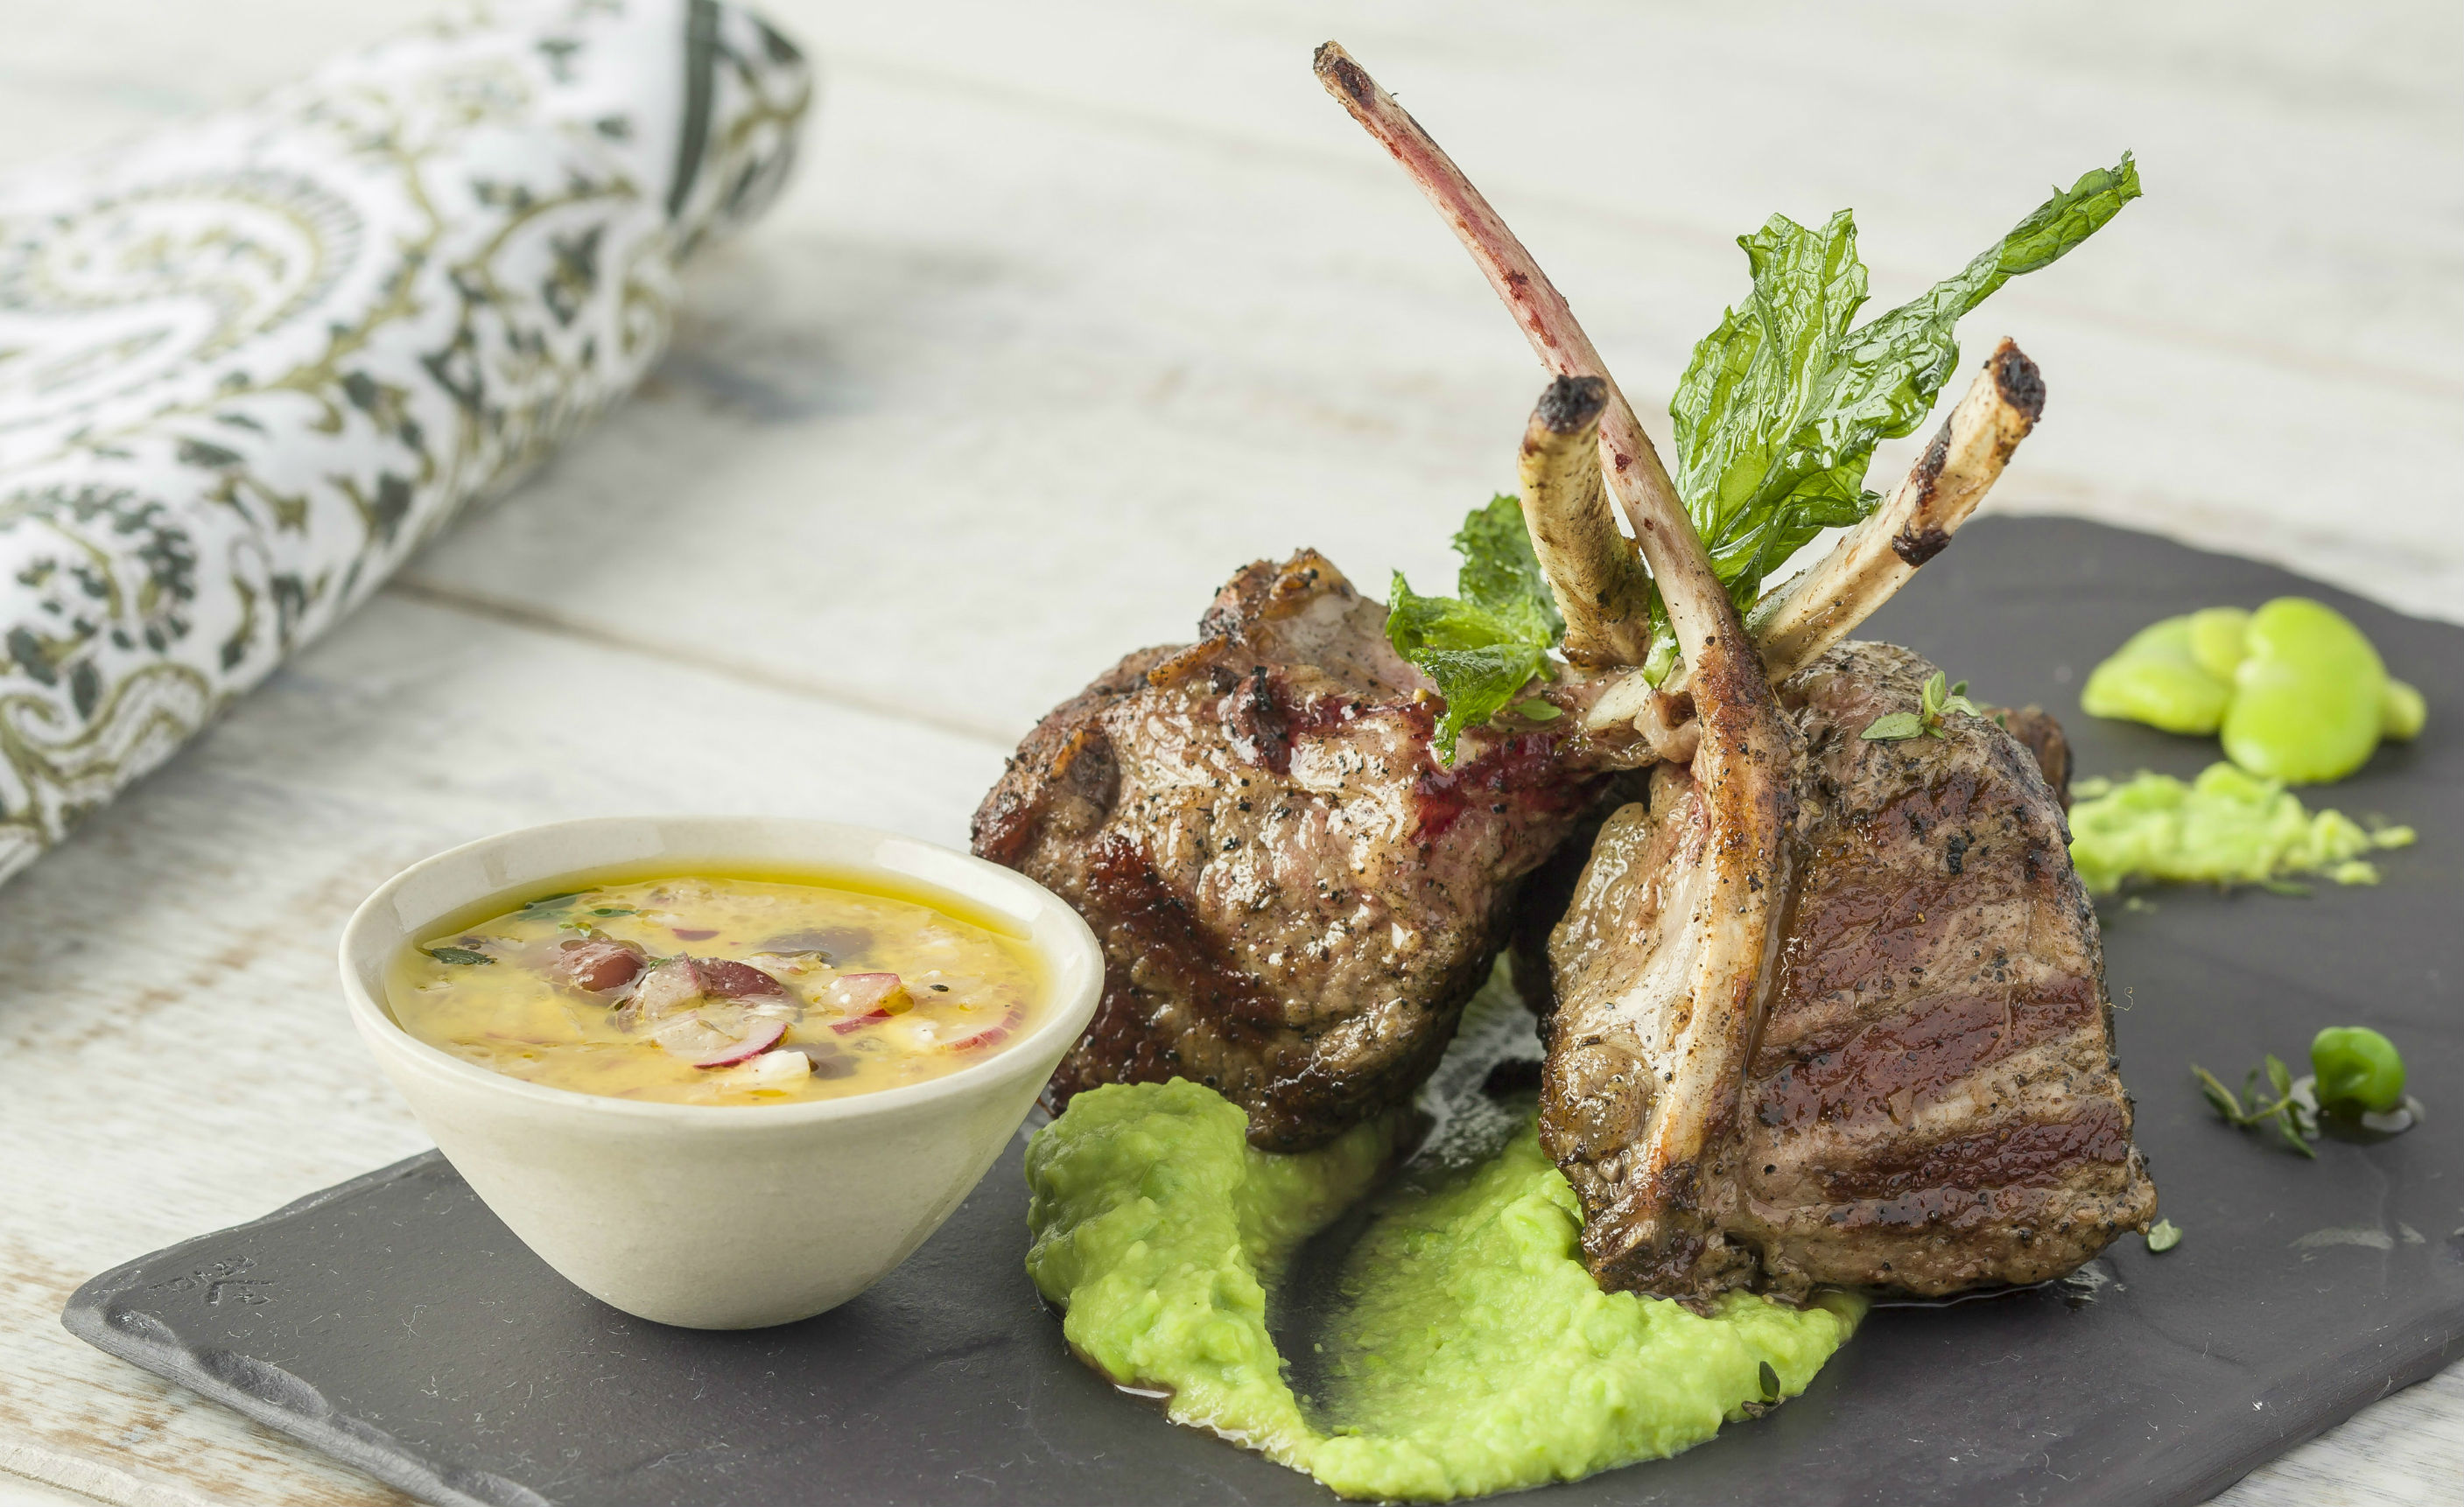 Grilled Lamb Chops with Chermoulah Dressing